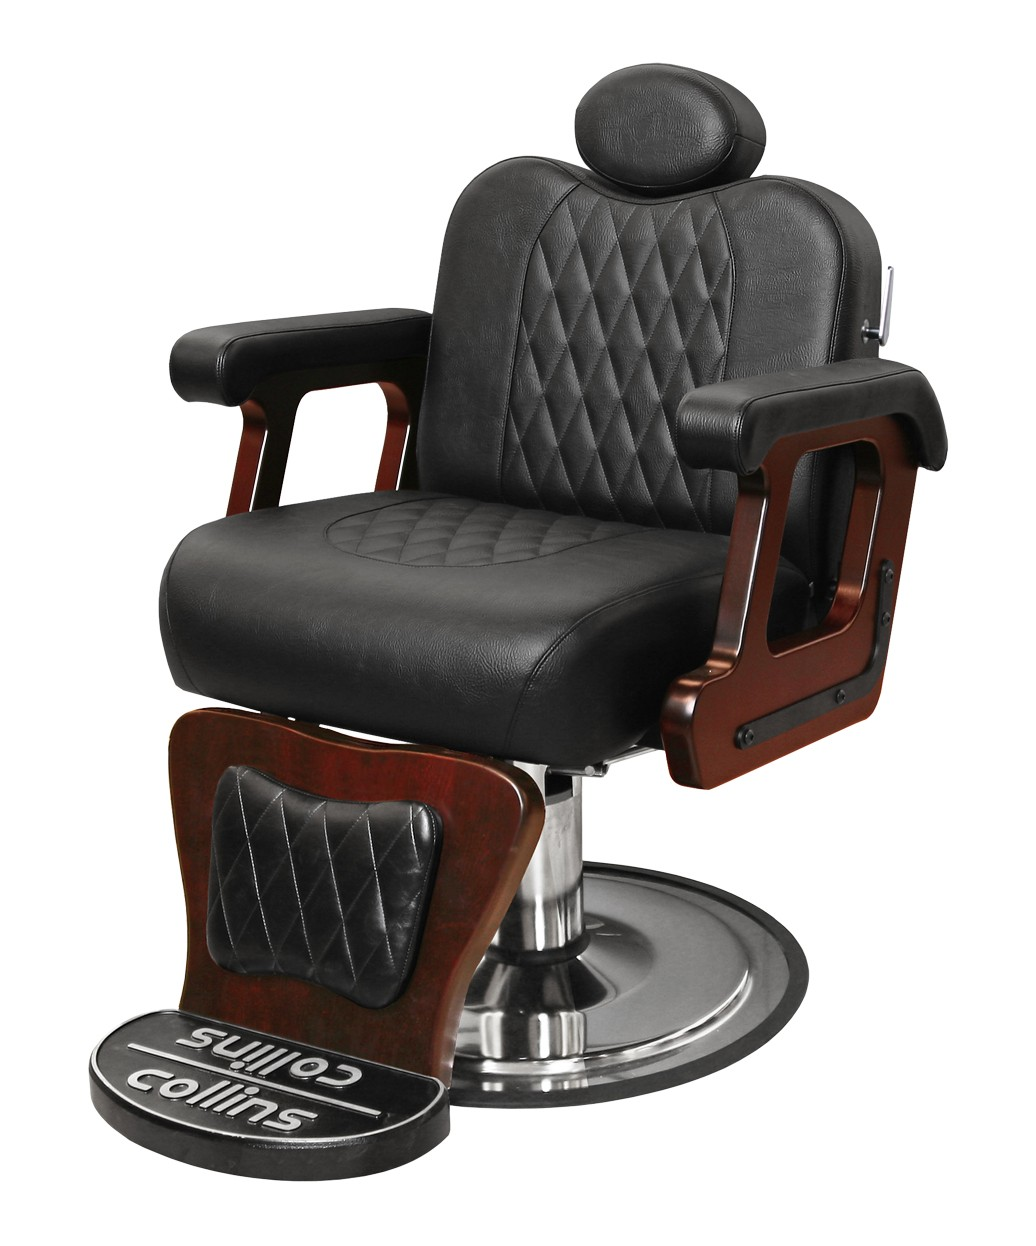 B10 Commander Premium Barber Chair, B Series